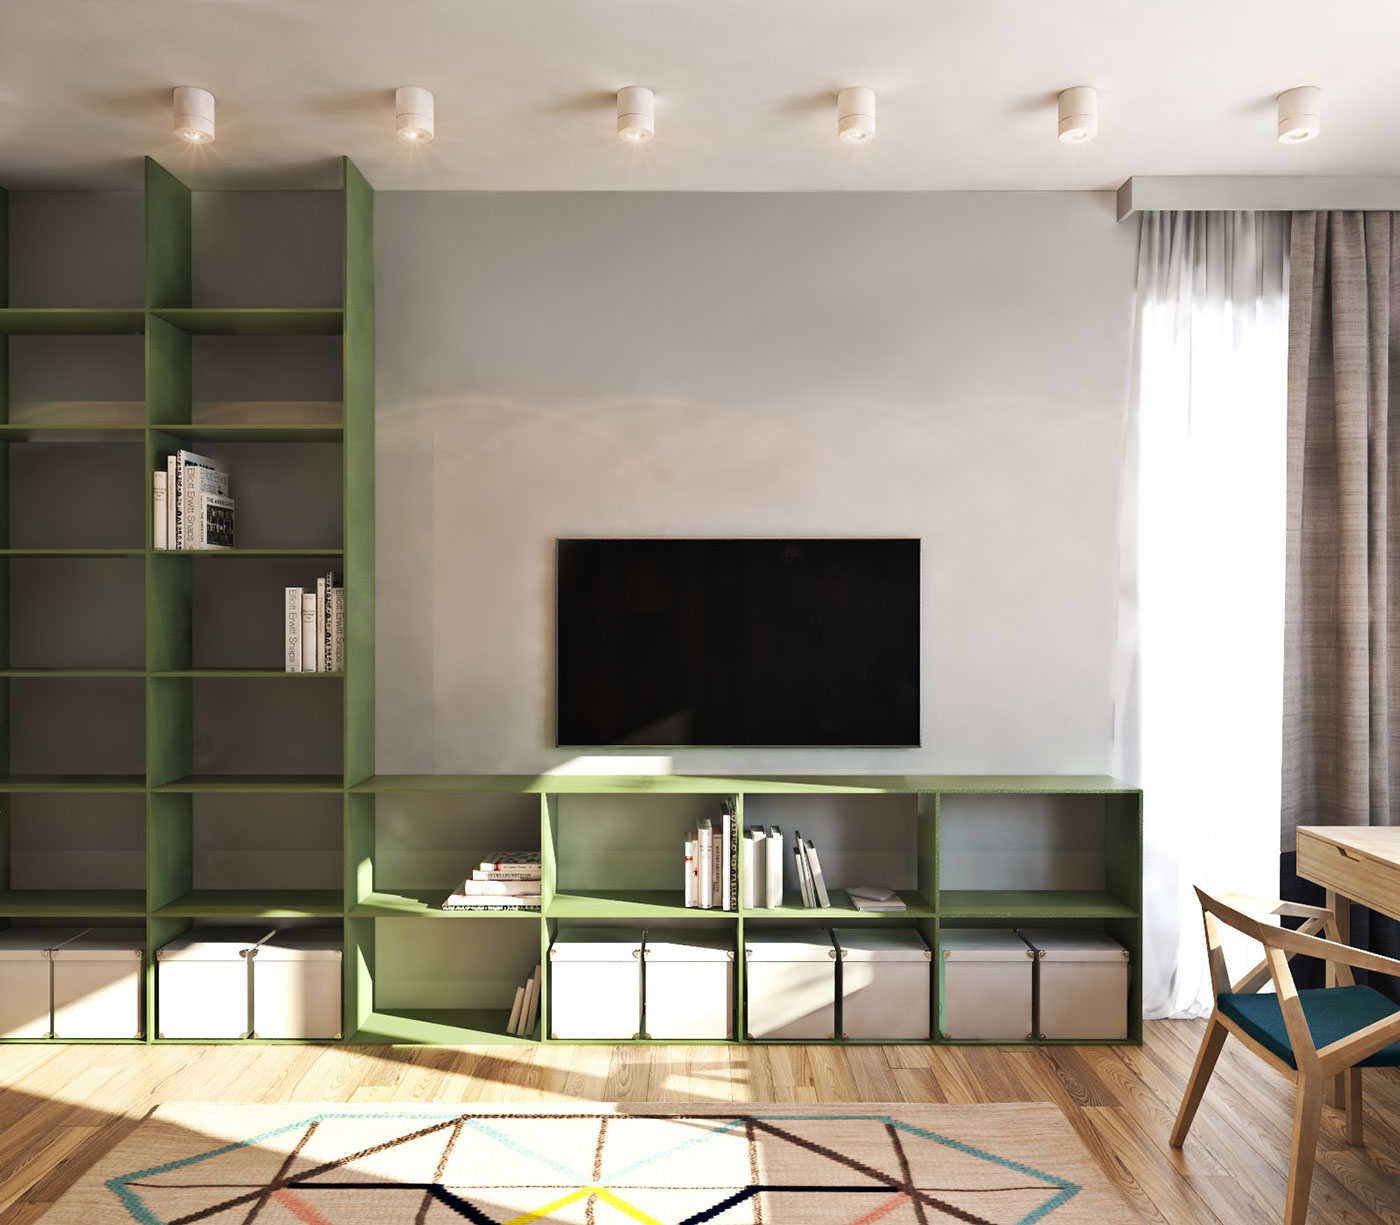 Custom Shelving - A contemporary apartment with lots of open space